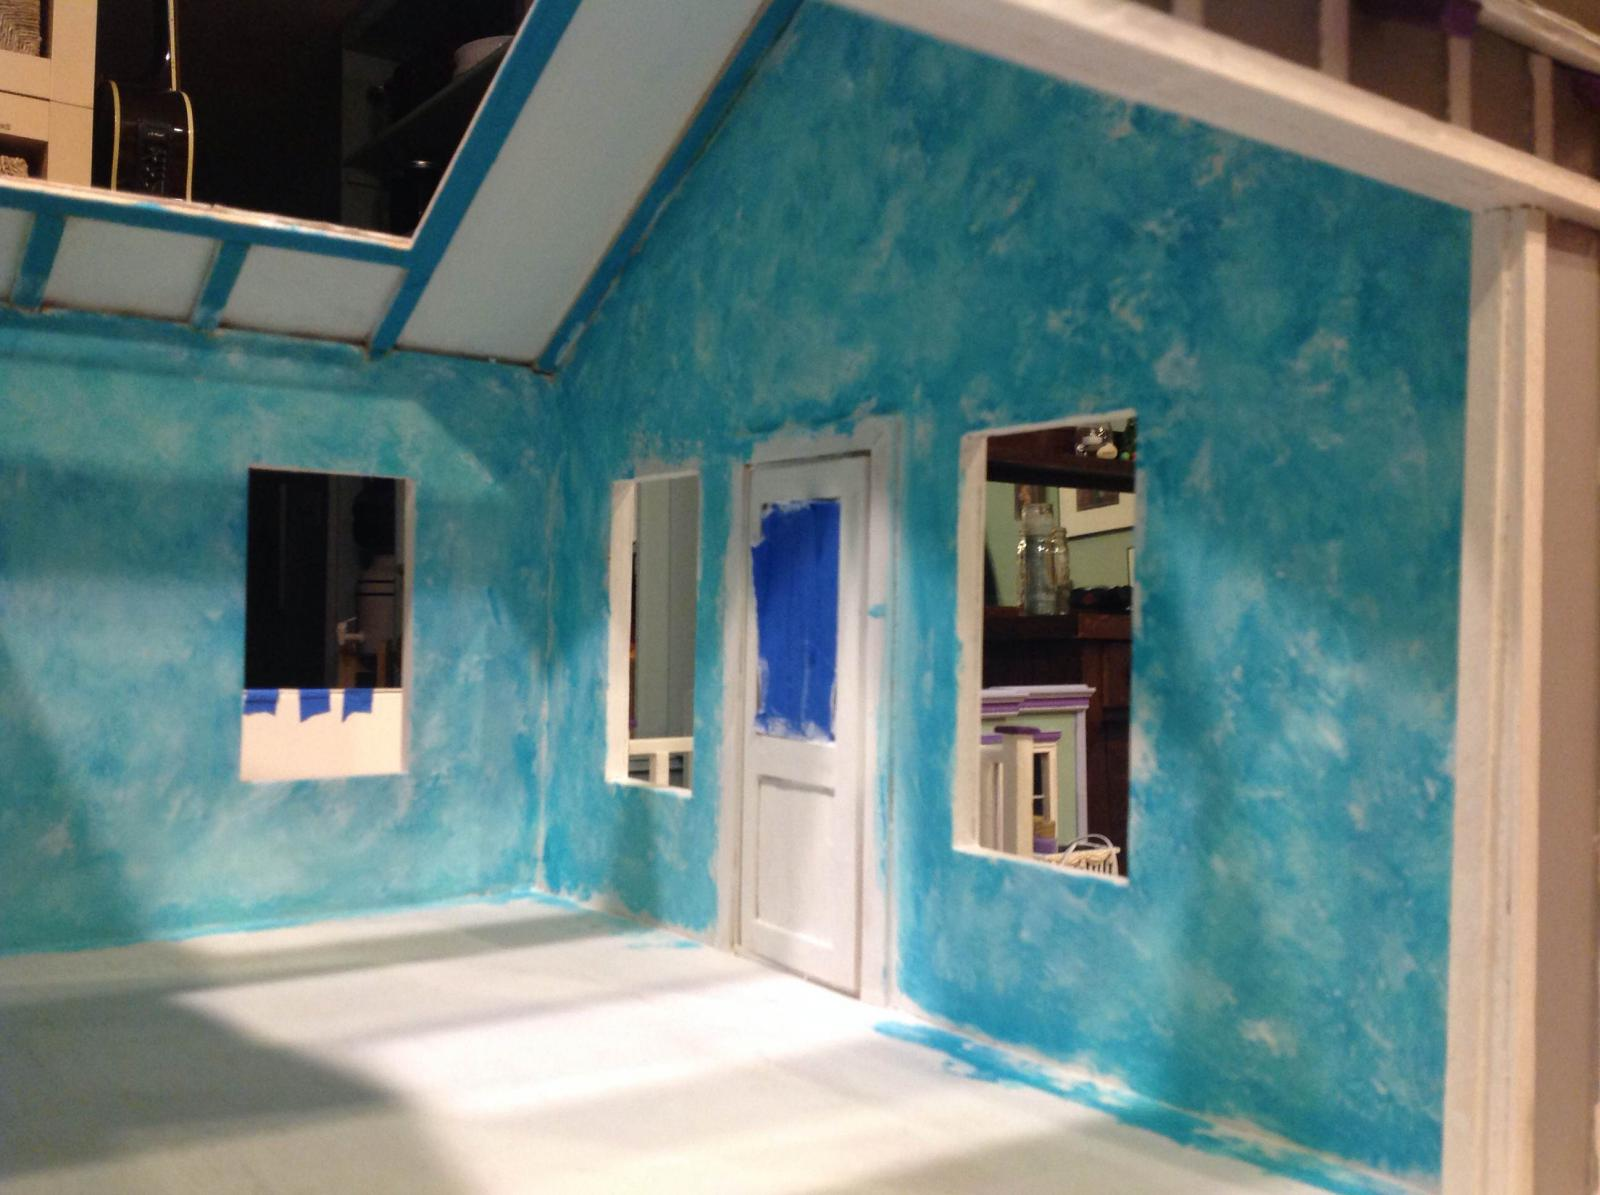 teal and white sponged walls